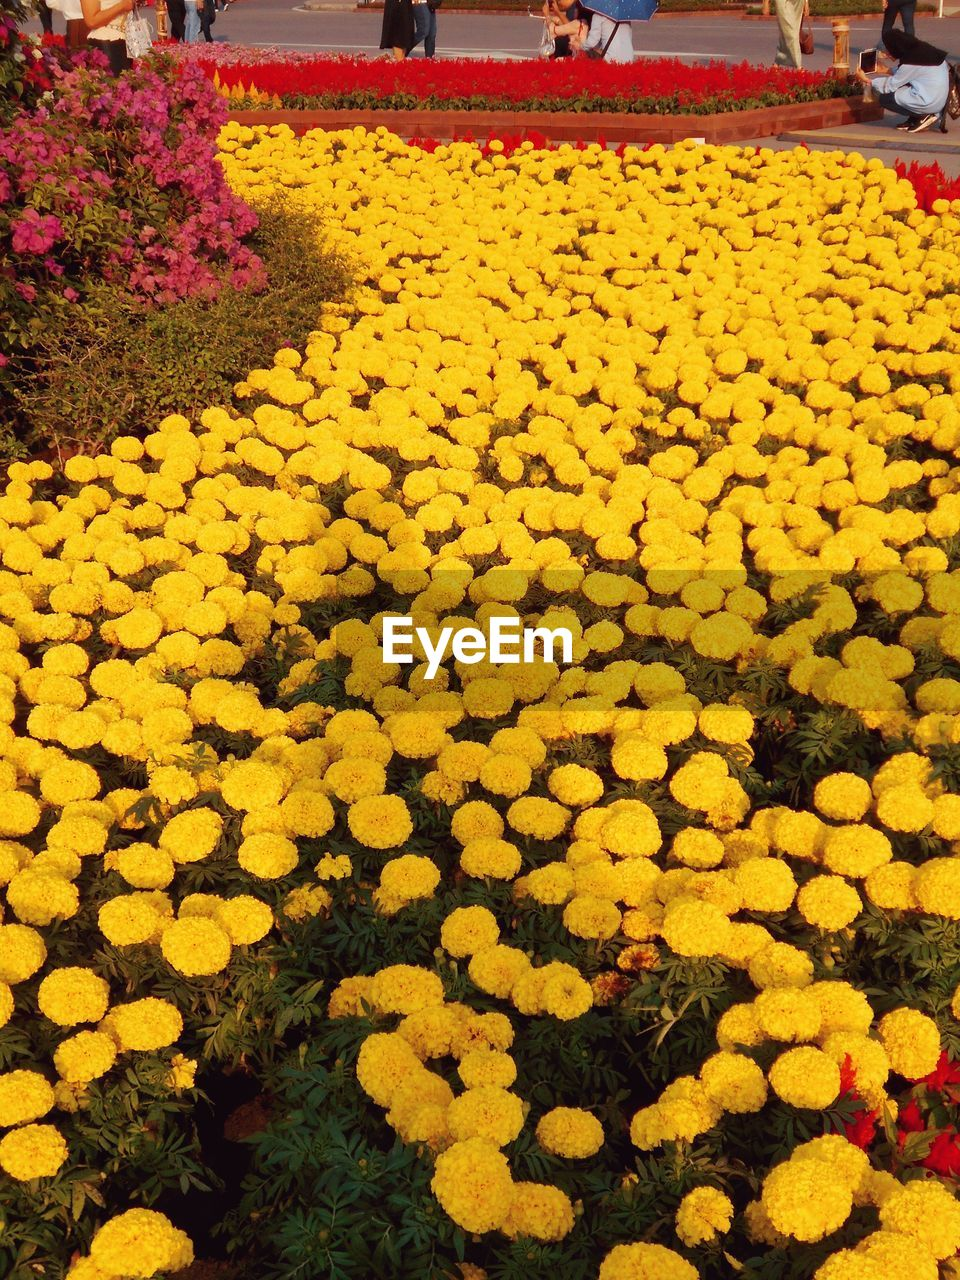 flower, yellow, abundance, nature, freshness, beauty in nature, fragility, outdoors, growth, day, flowerbed, plant, large group of objects, no people, marigold, landscape, flower head, close-up